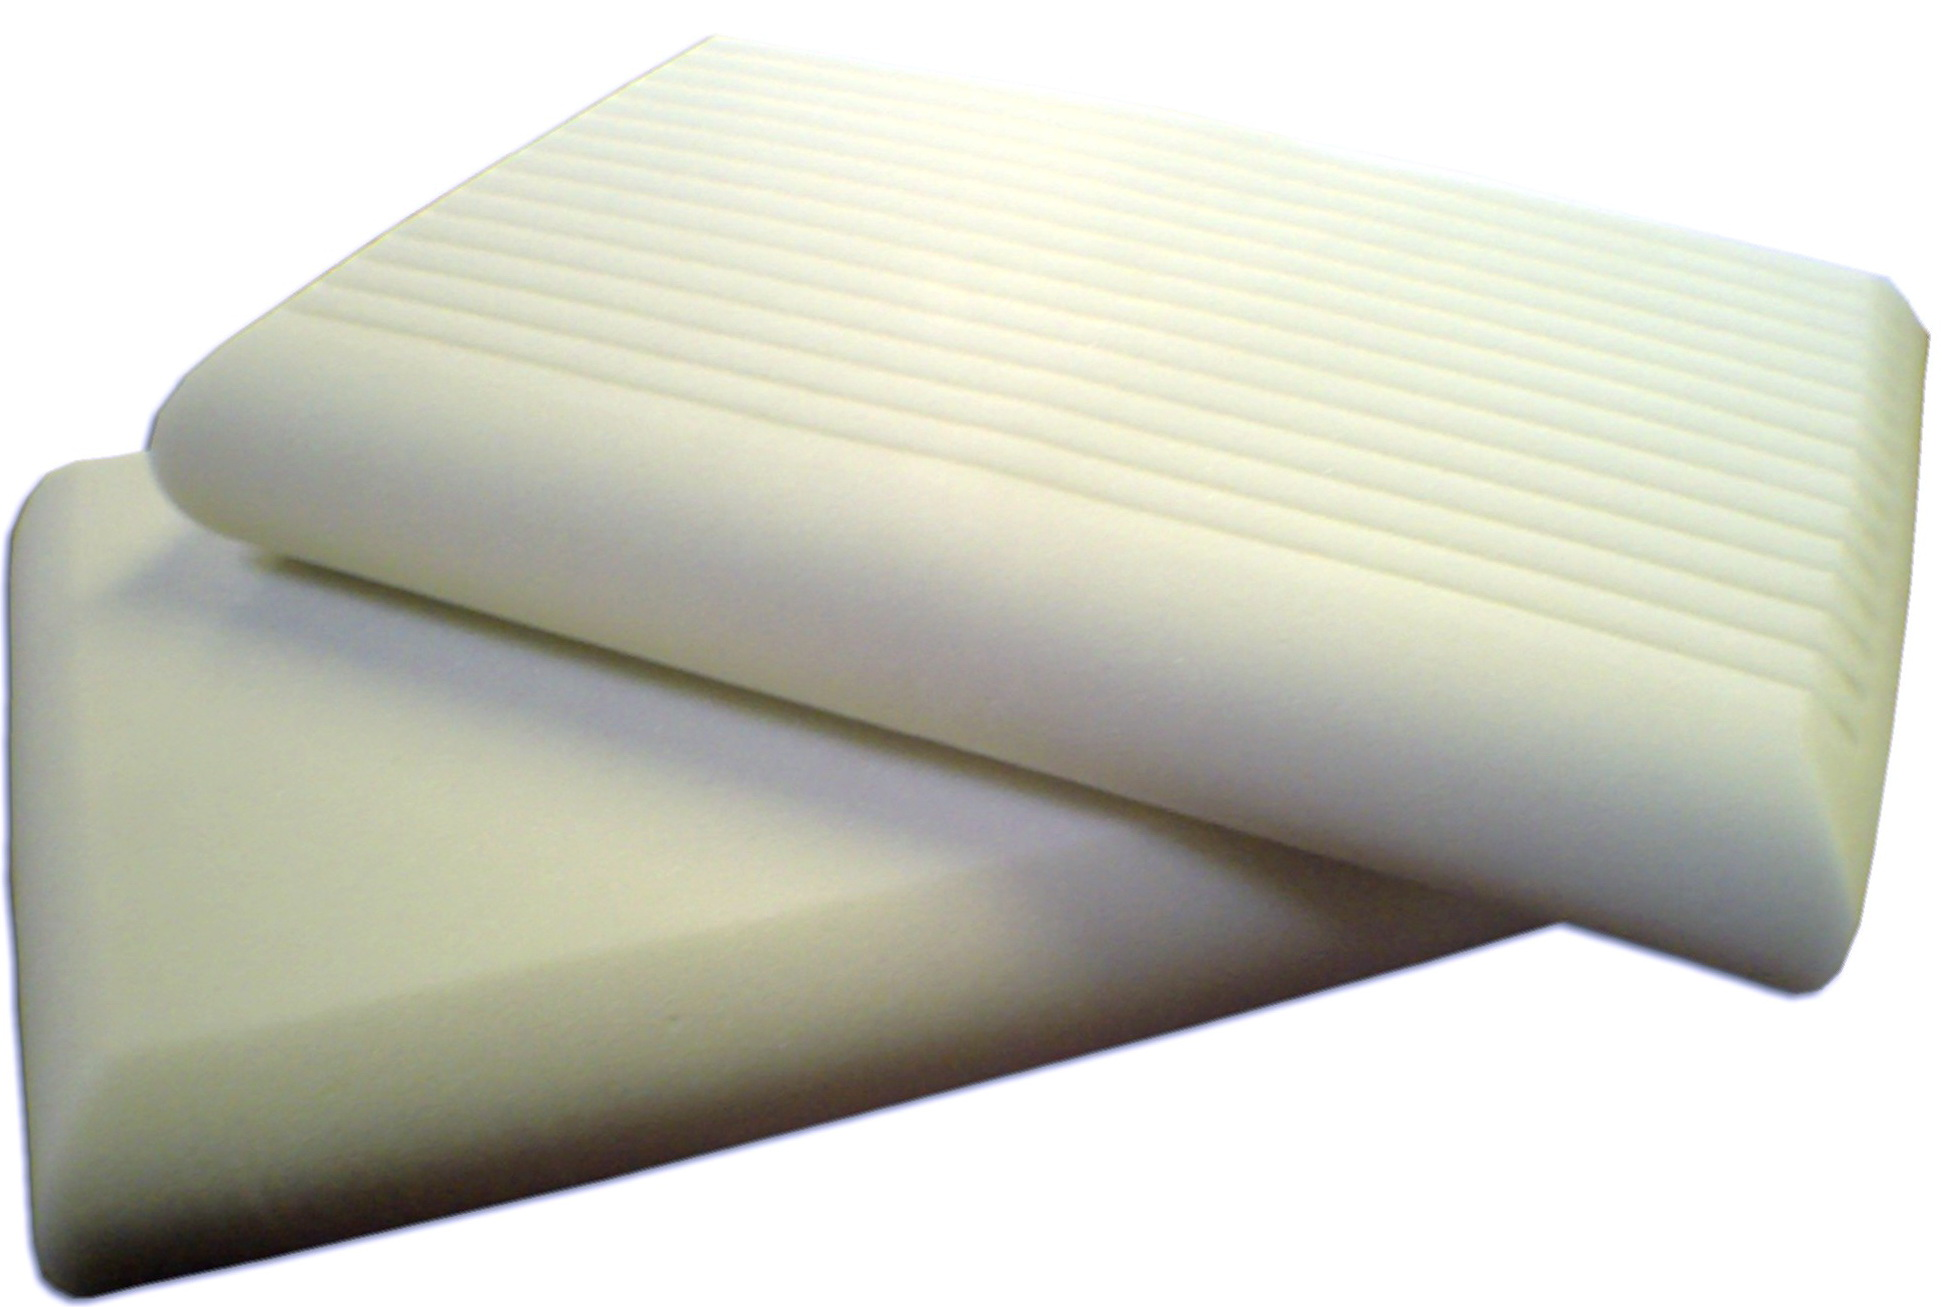 Where To Buy Foam For Cushions Canada